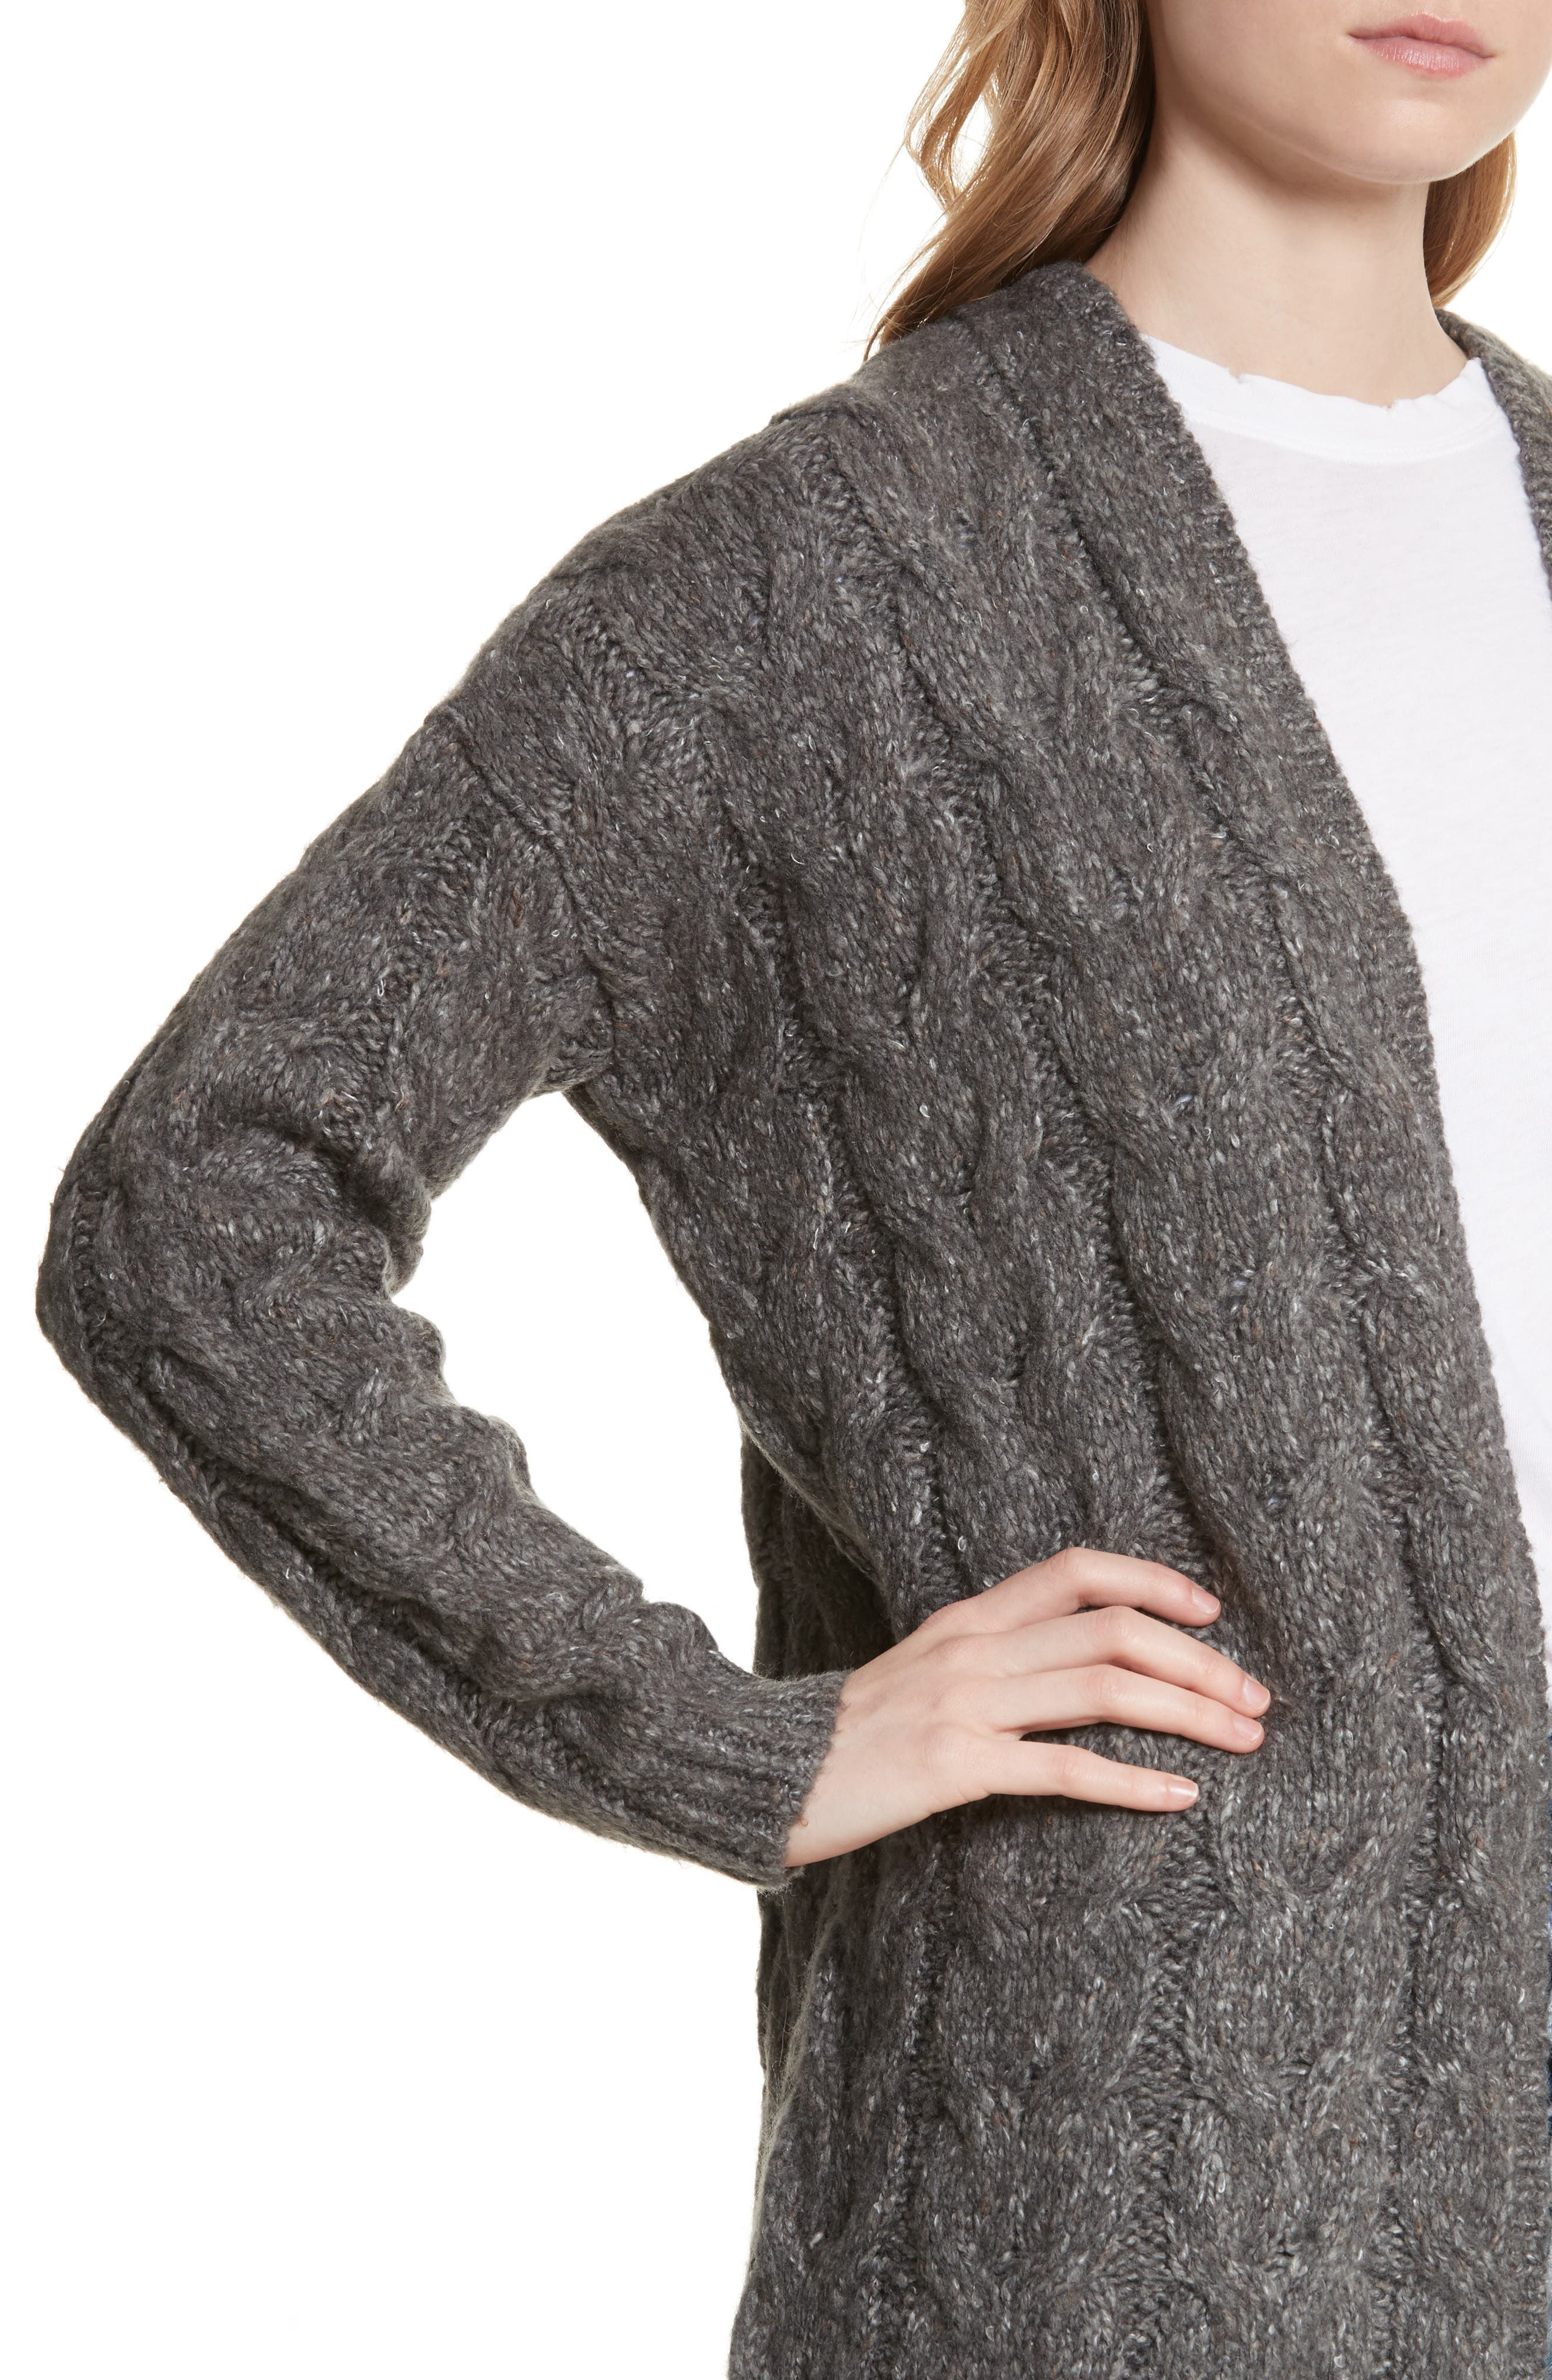 Tienna Cable-Knit Cardigan,                             Alternate thumbnail 4, color,                             Dark Heather Grey